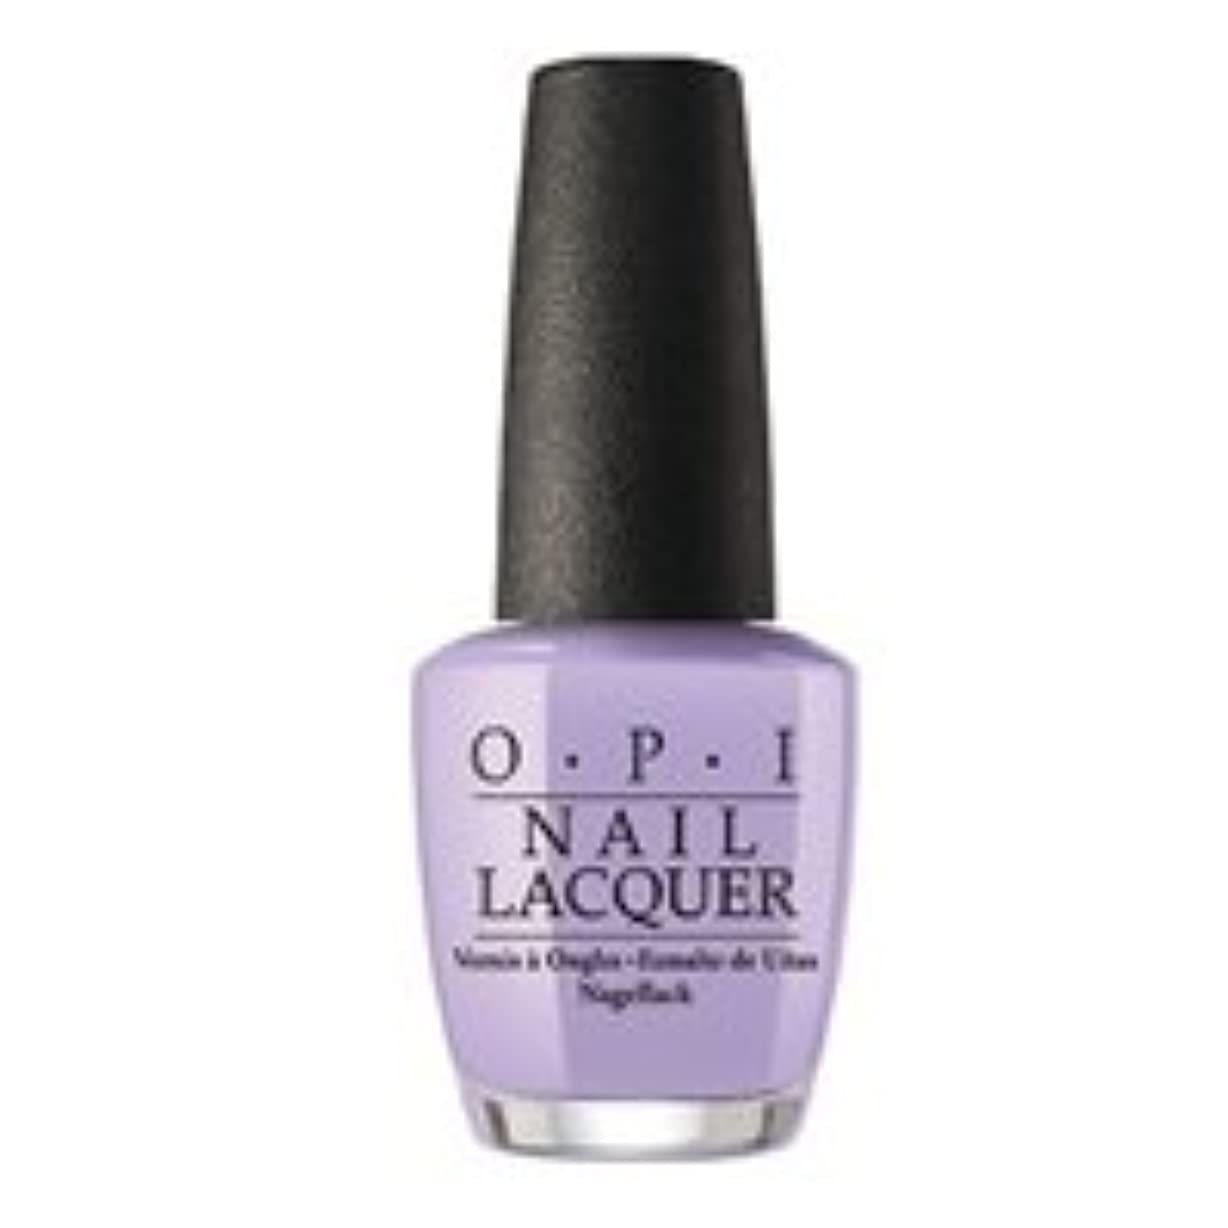 色中庭不要O.P.I NL F83 Polly Want a Lacquer?(ポリーワットアラッカー?) #NL F83 Polly Want a Lacquer?